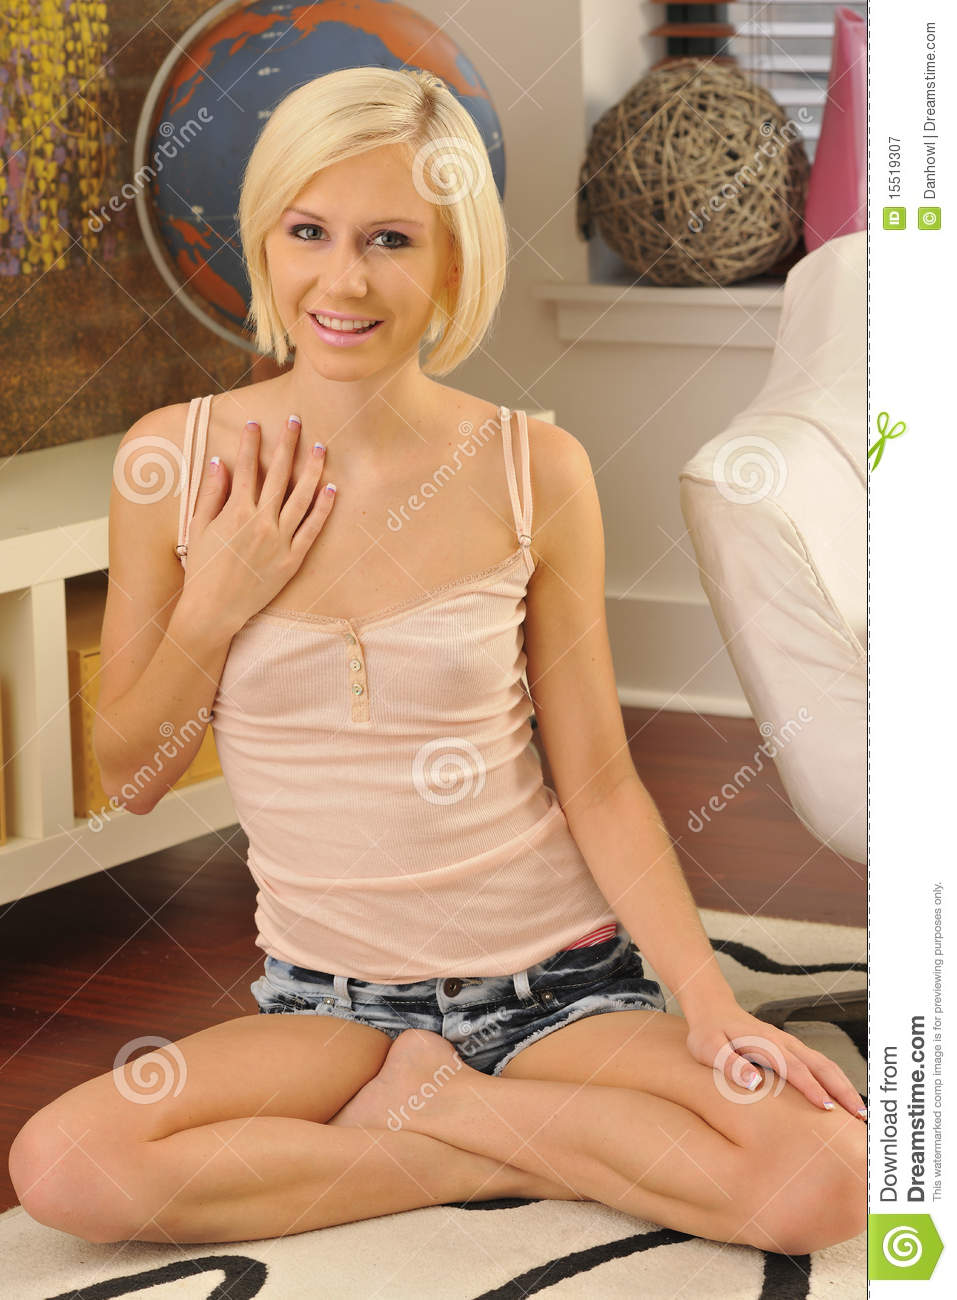 Blond Model Legs Crossed Stock Image Image Of Healthy